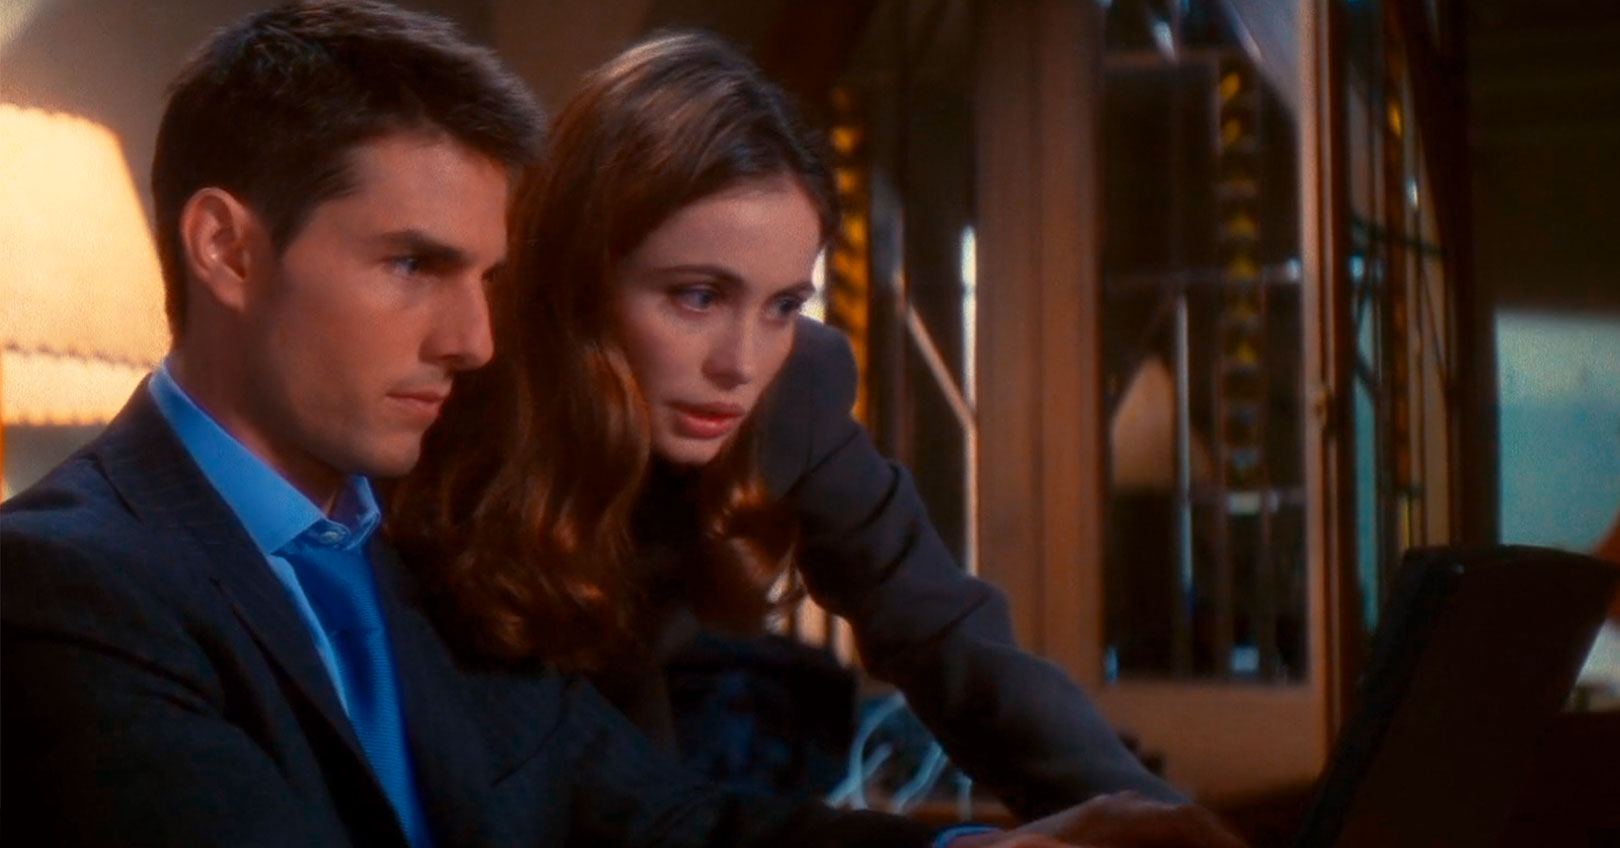 Mission: Impossible - Tom Cruise and Emmanuelle Béart